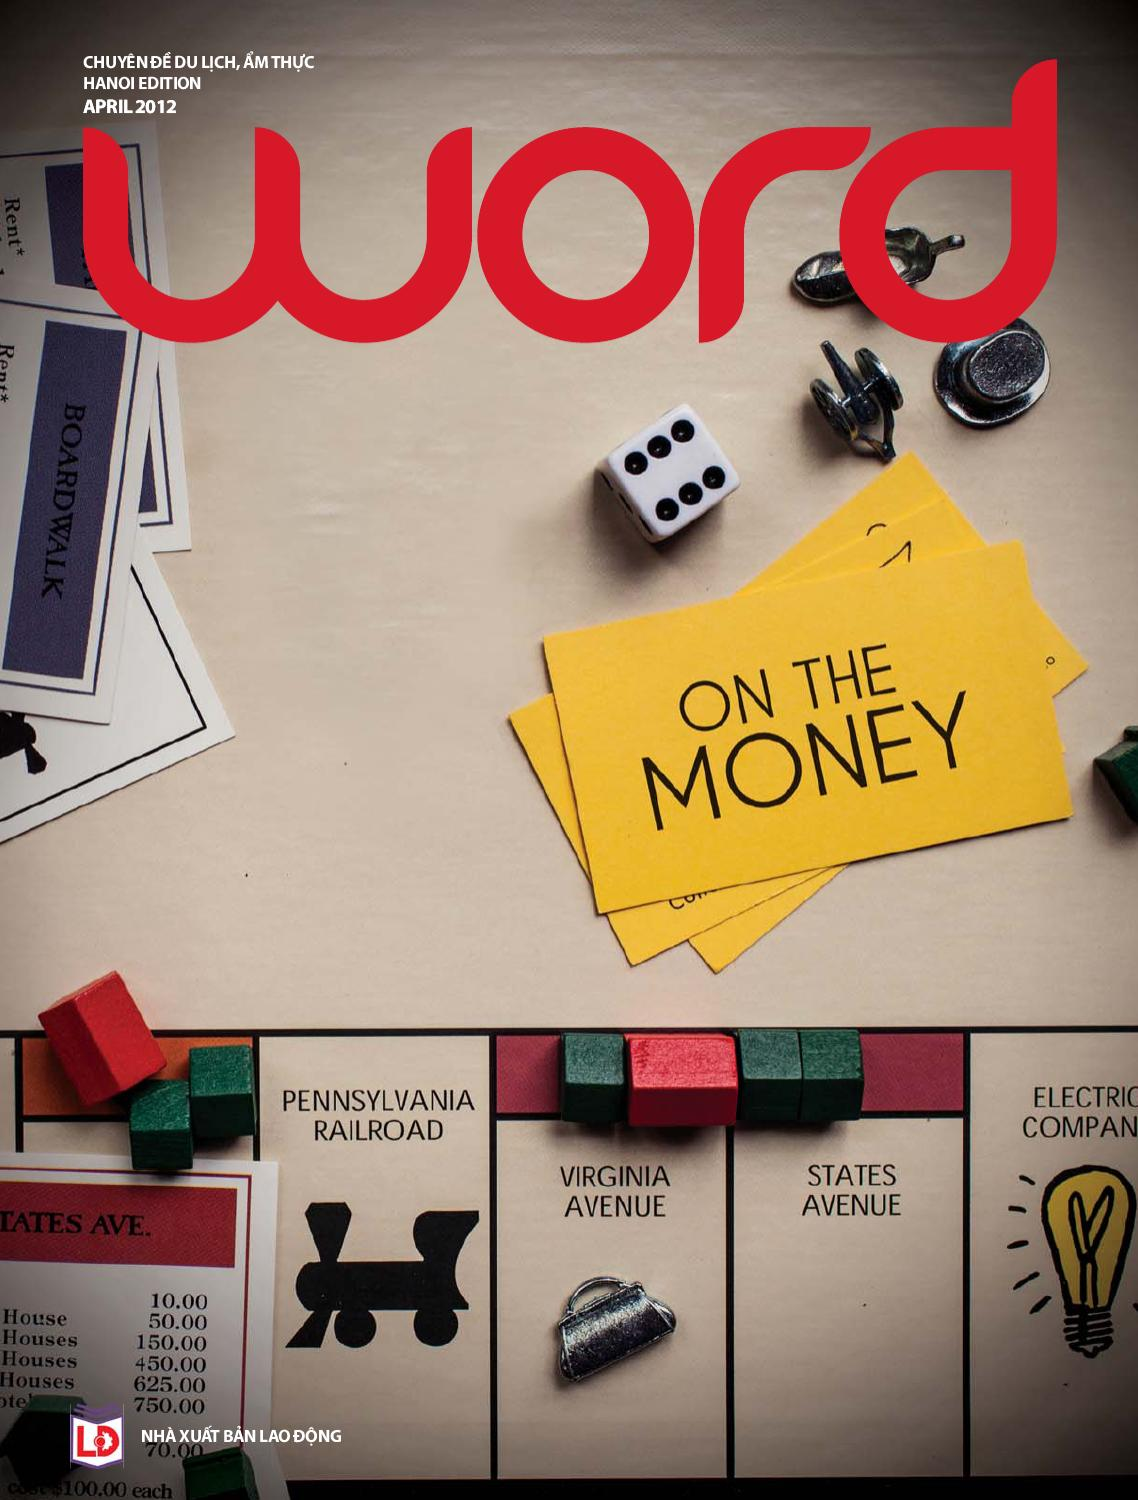 ffca90e65 The Word Ha Noi April 2012 Issue by Word Vietnam - issuu